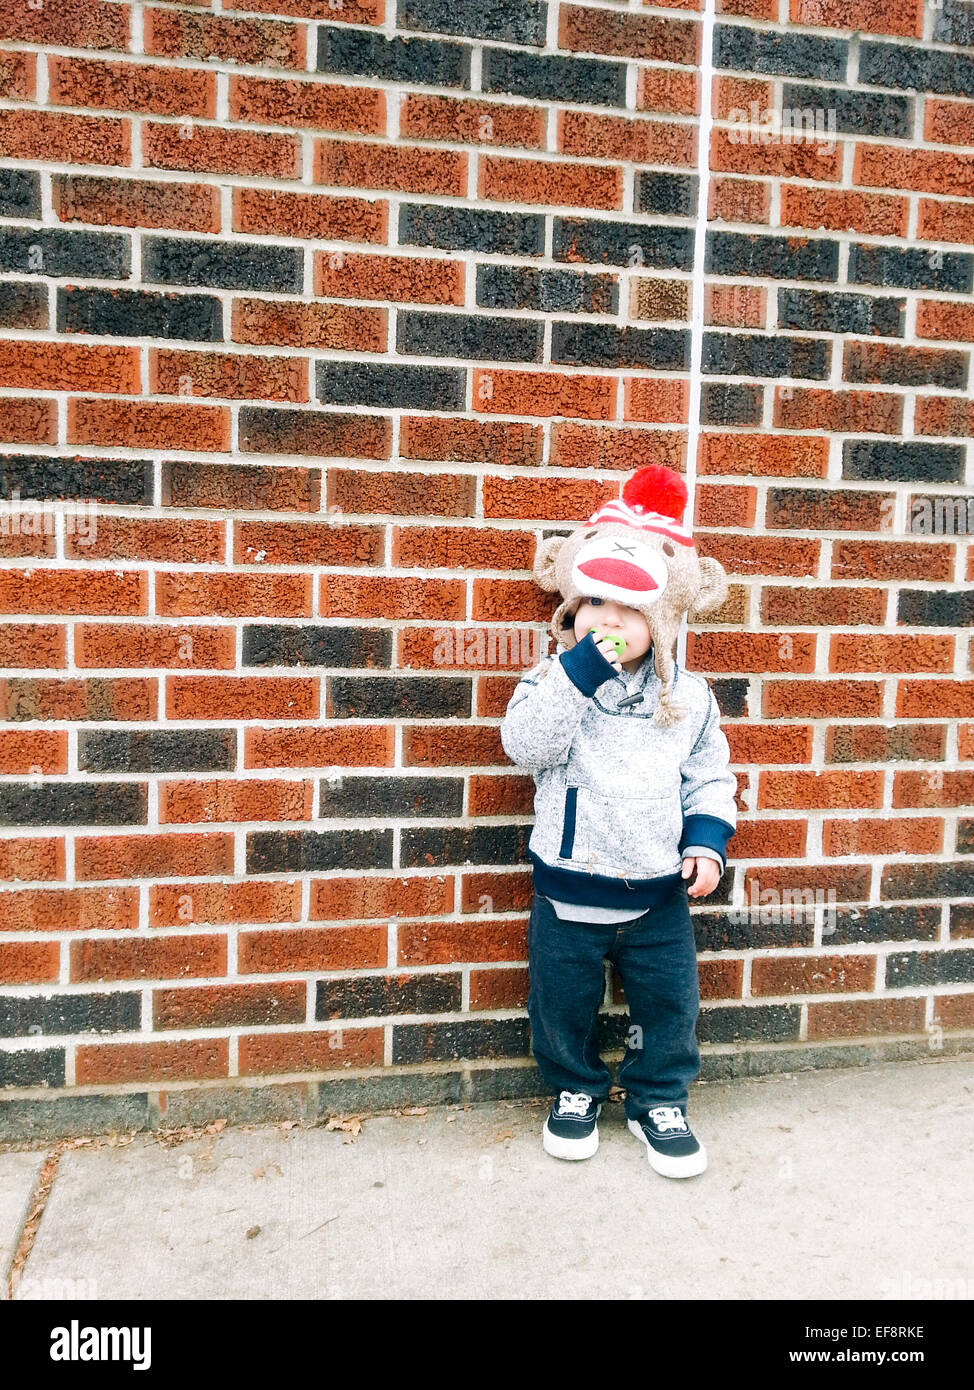 Boy leaning against brick wall - Stock Image